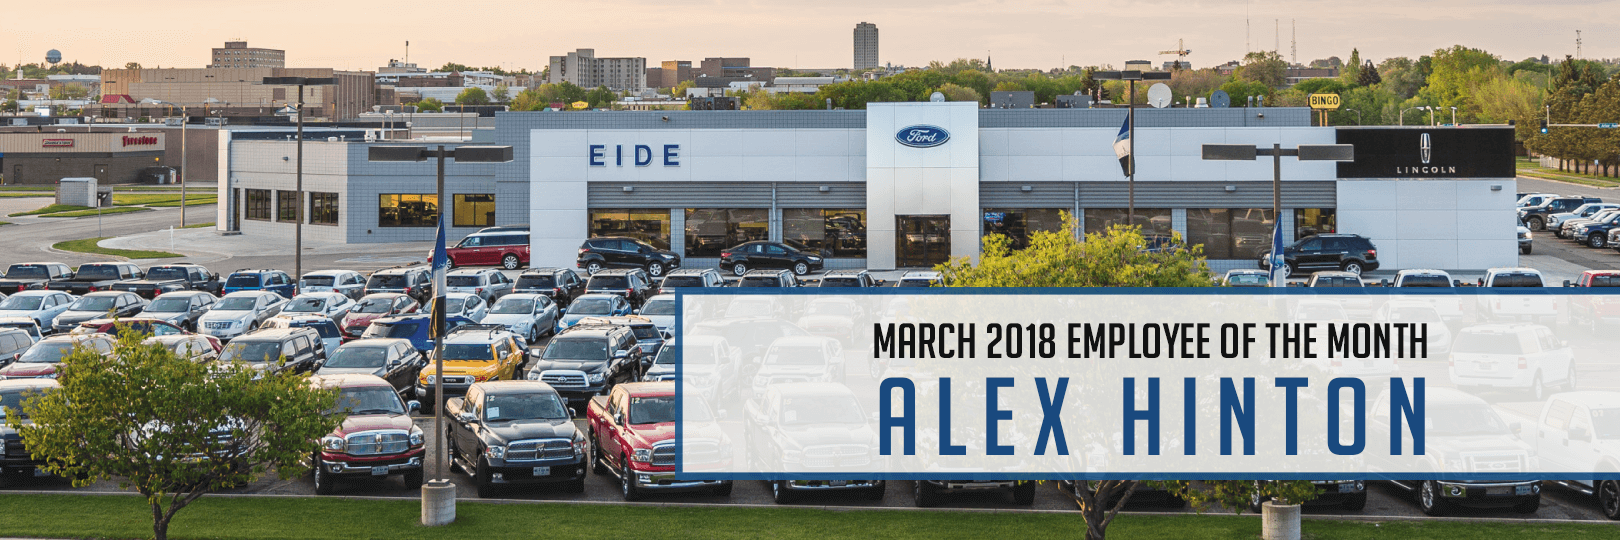 Alex Hinton, Eide Ford Employee of the Month